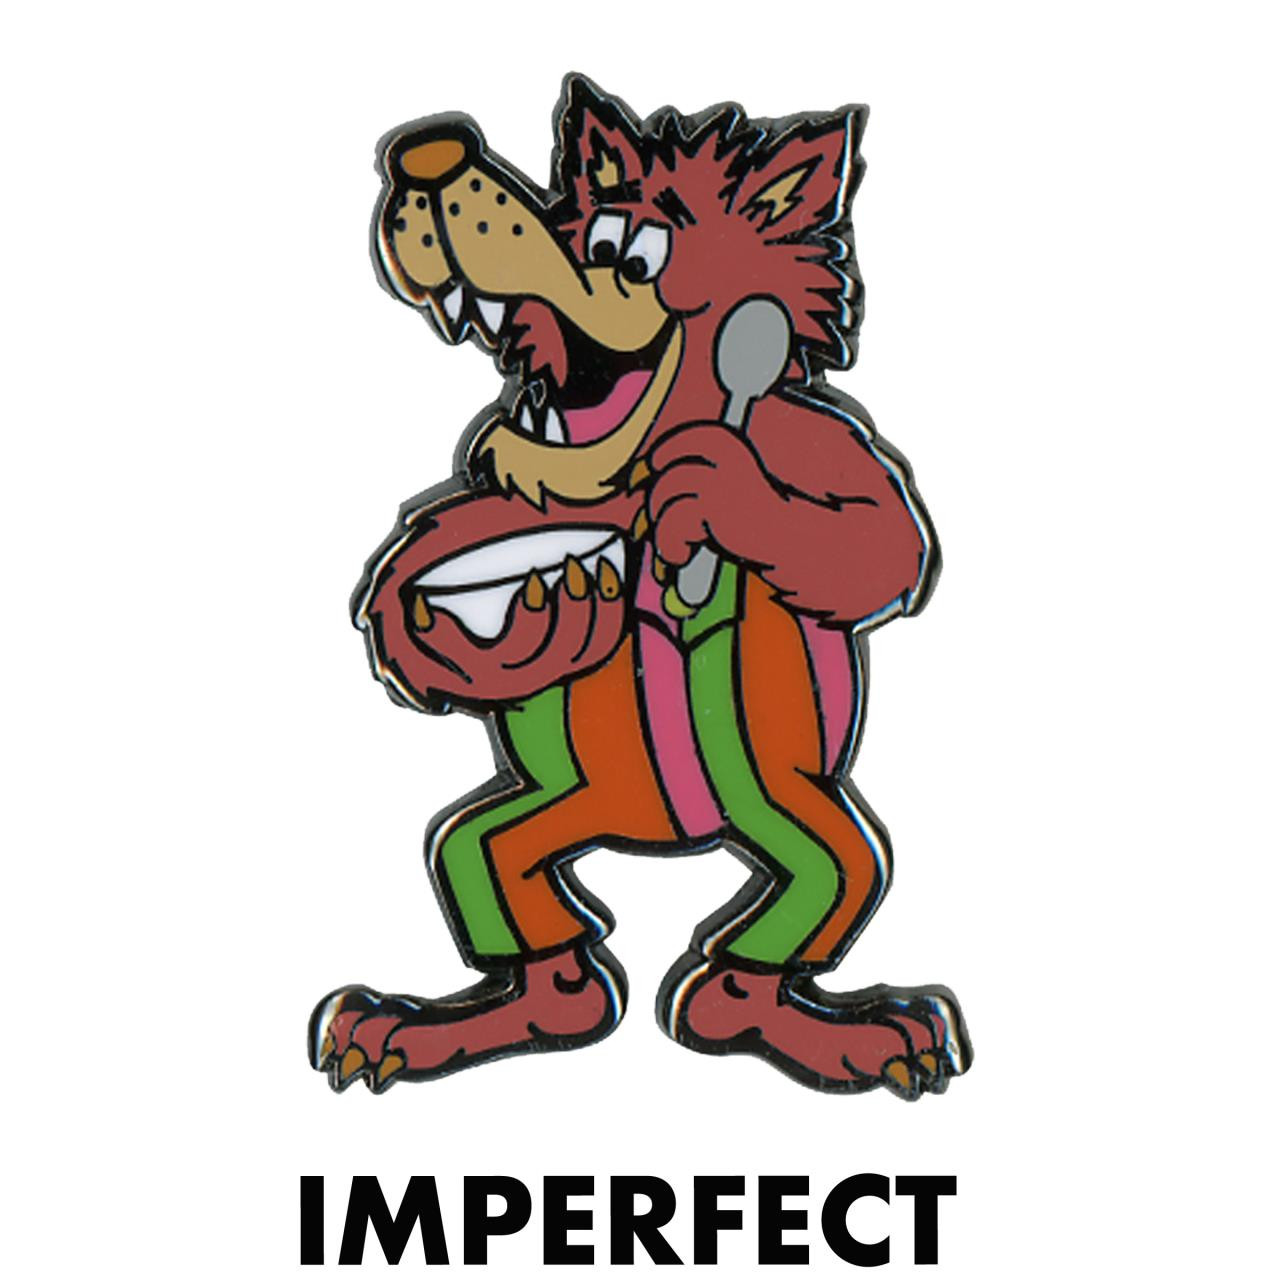 Imperfect General Mills Frute Brute Buddy Collectible Pin* -